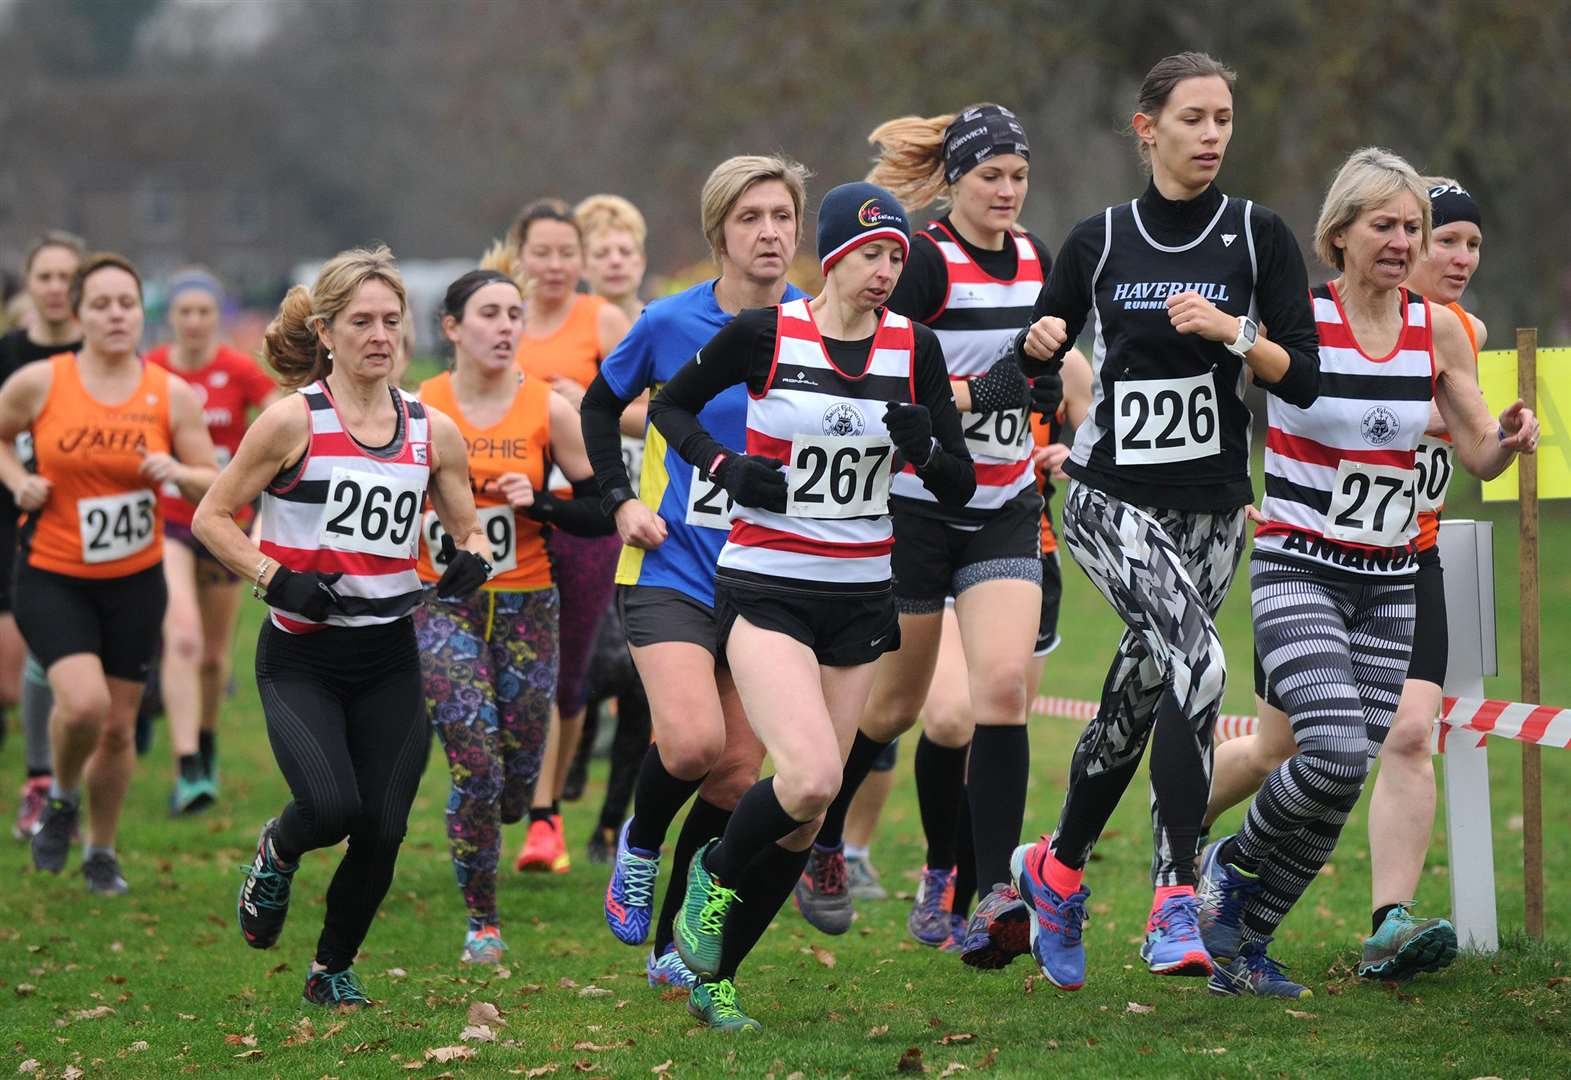 Suffolk Championships illustrate growth of Haverhill Running Club